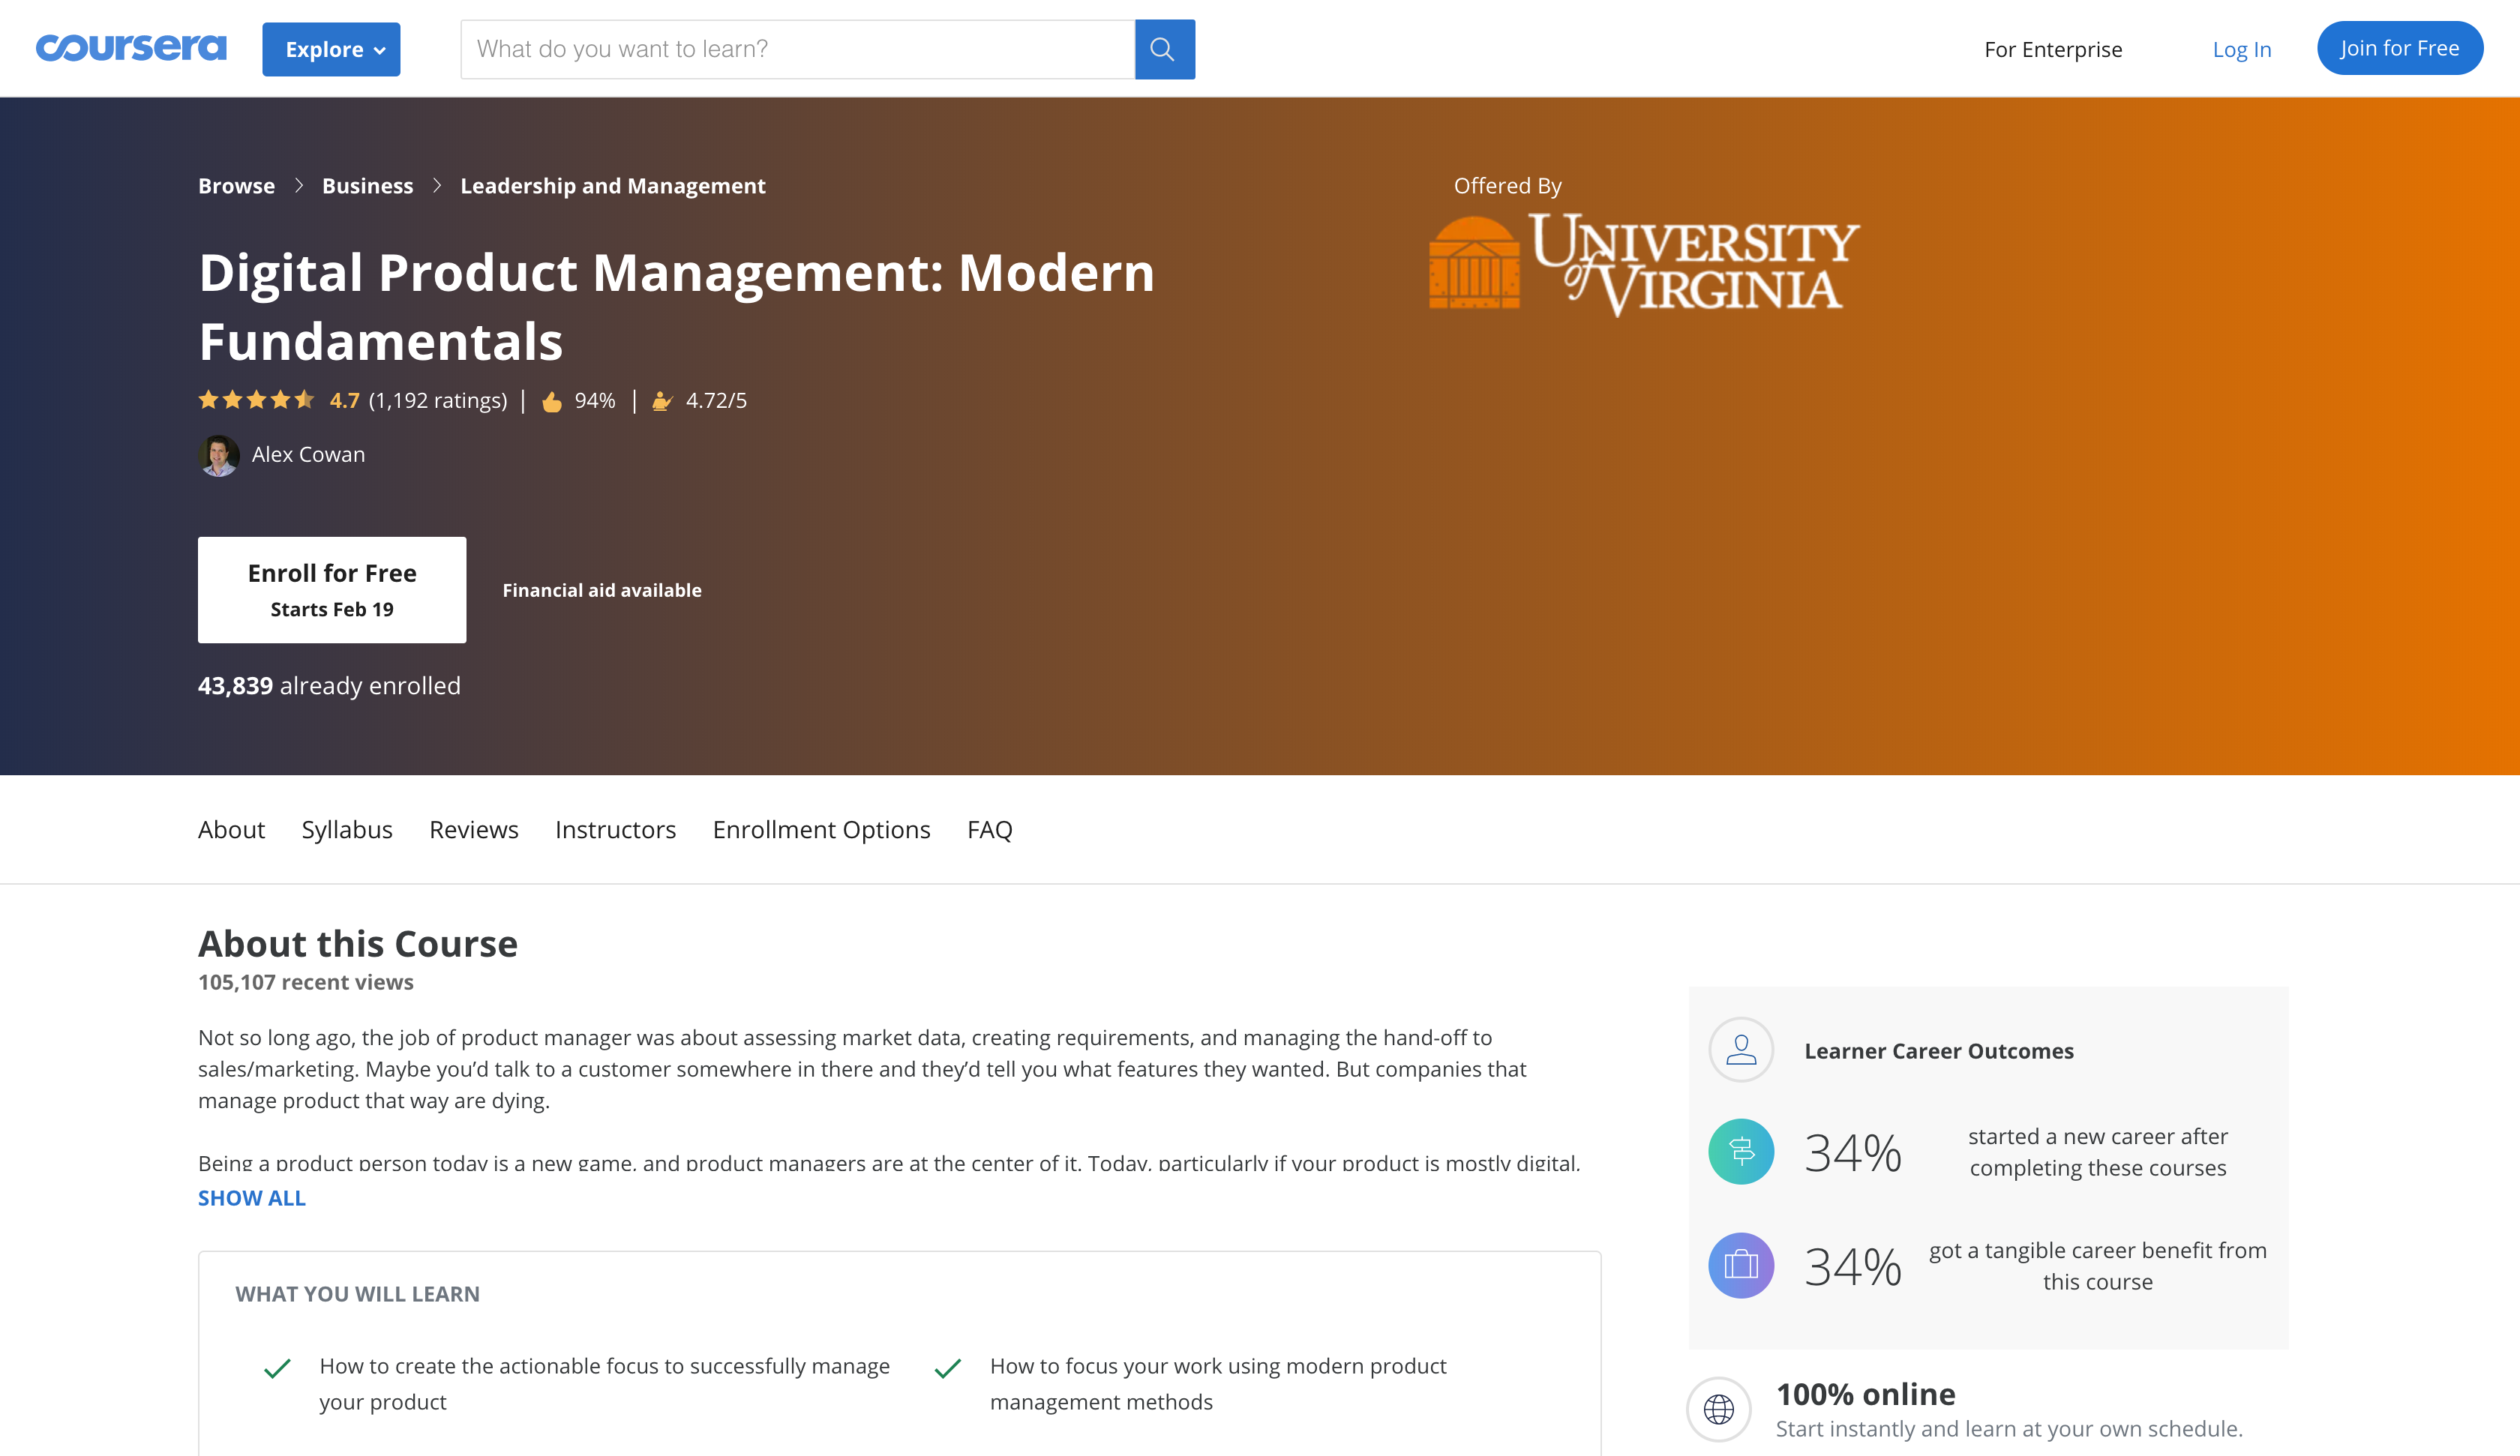 Digital Product Management Certification: Modern Fundamentals by University of Virginia (Coursera)